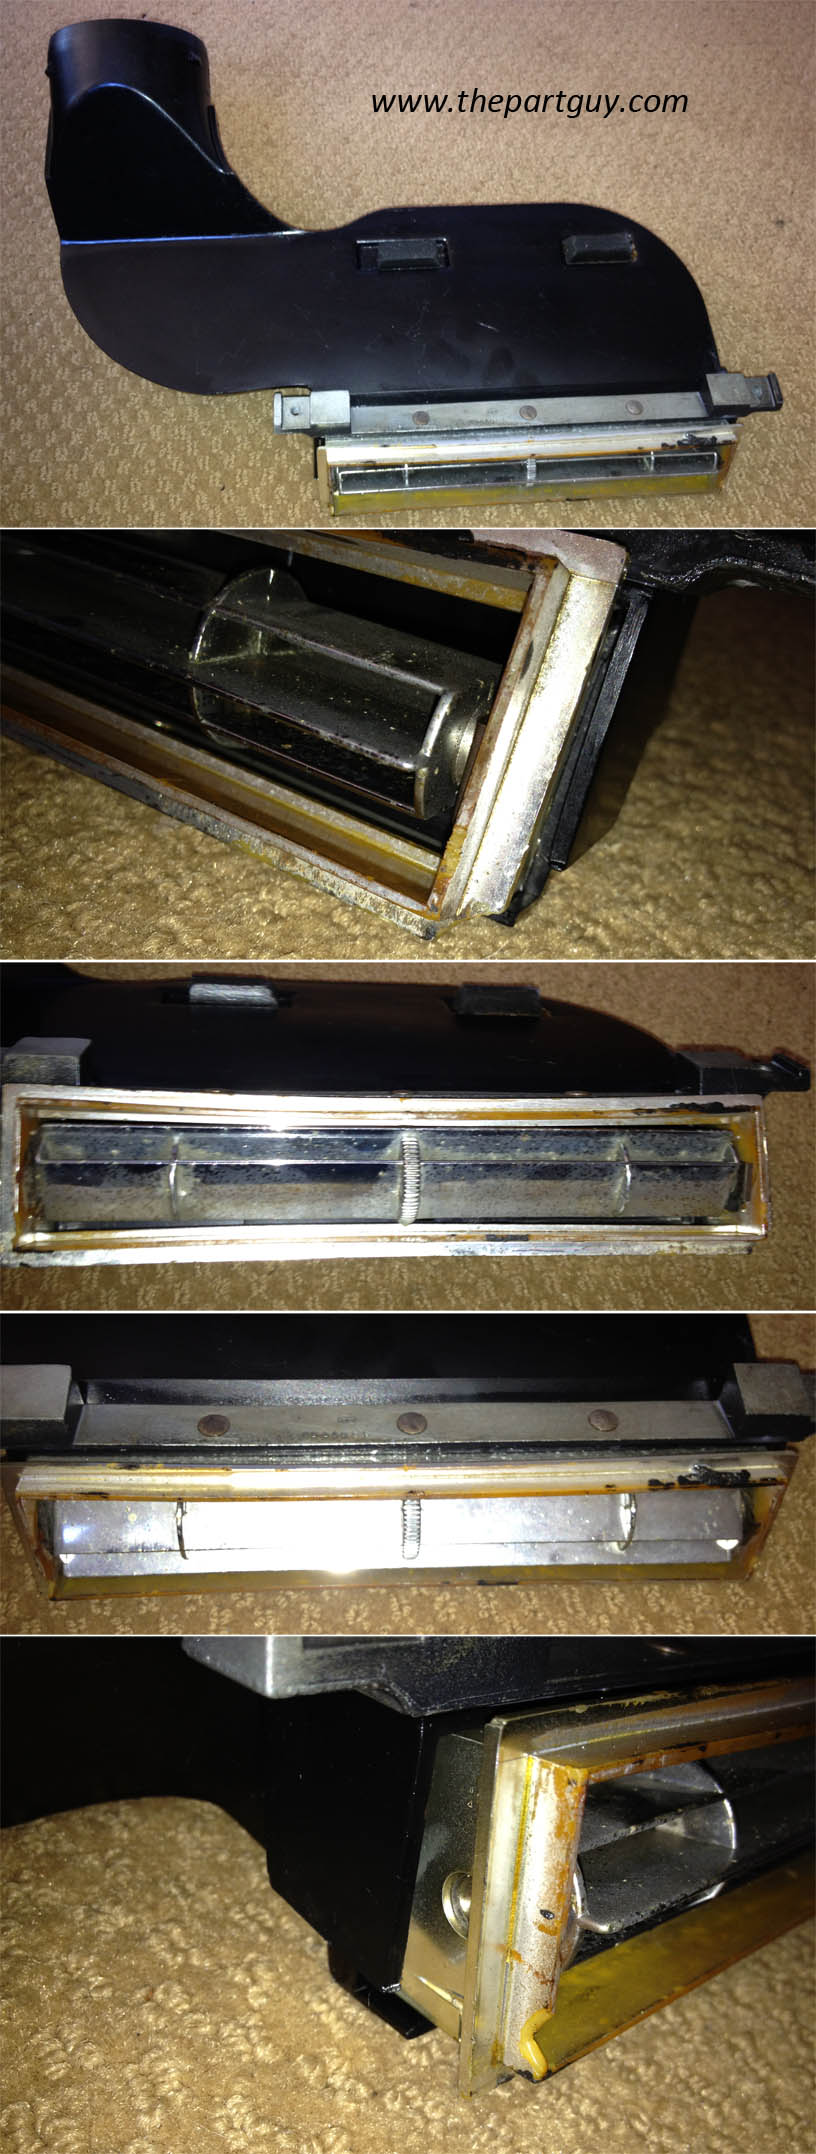 1966 chevelle a c center vent duct assembly air for 1967 chevelle vent window assembly